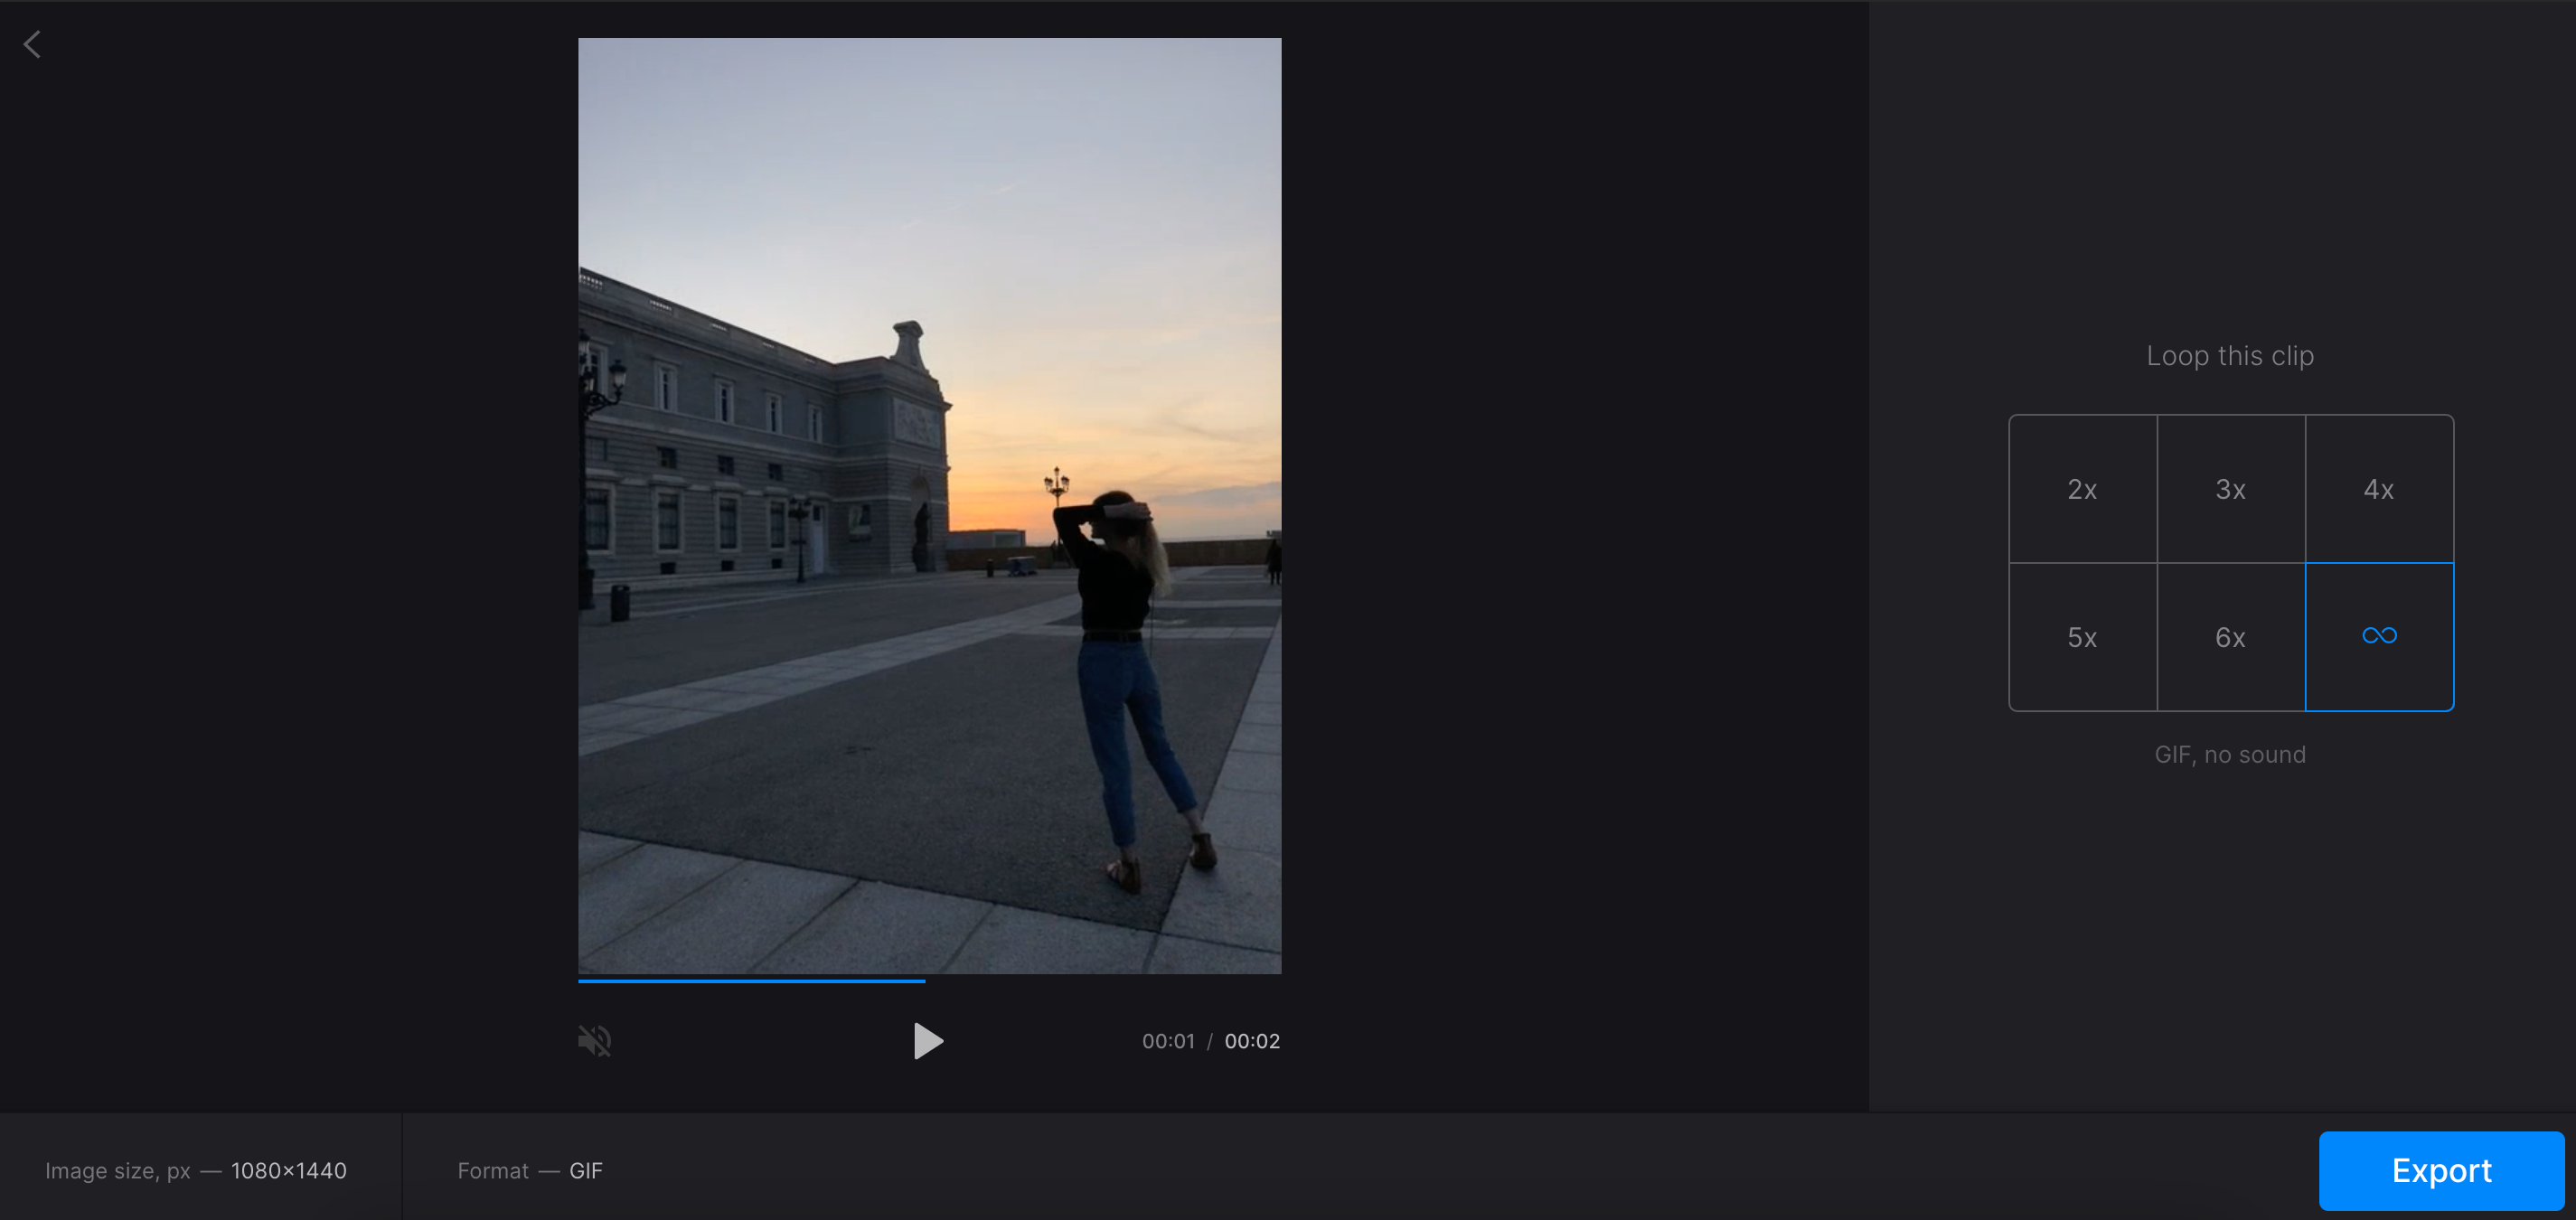 Create a GIF from the video